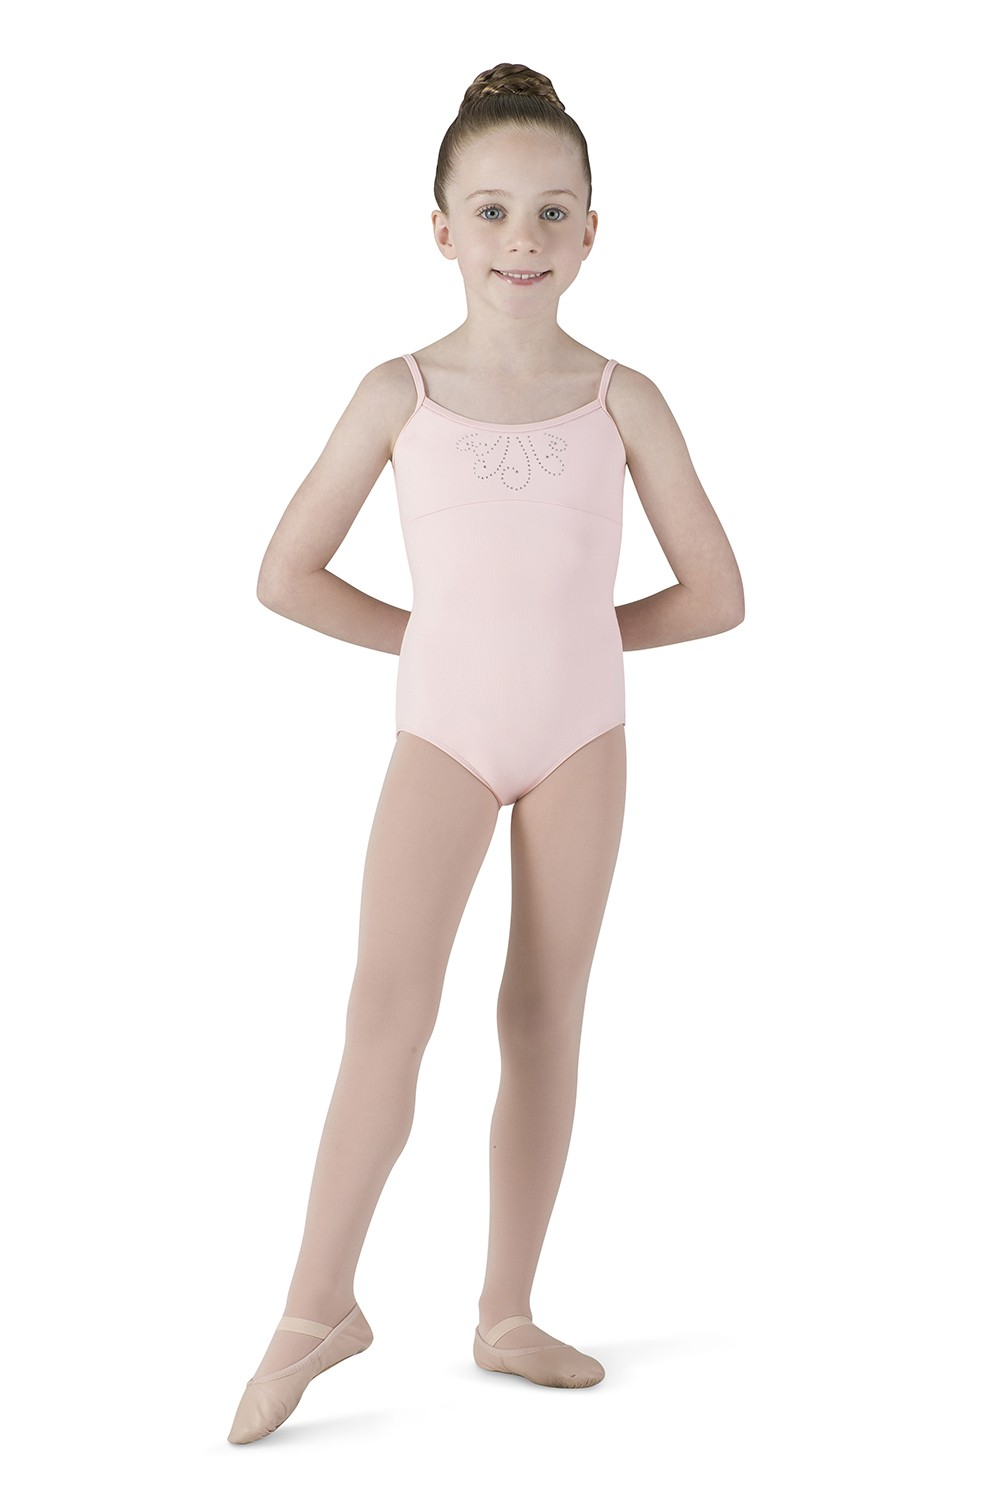 Diamante Swirl Camisole Children's Dance Leotards